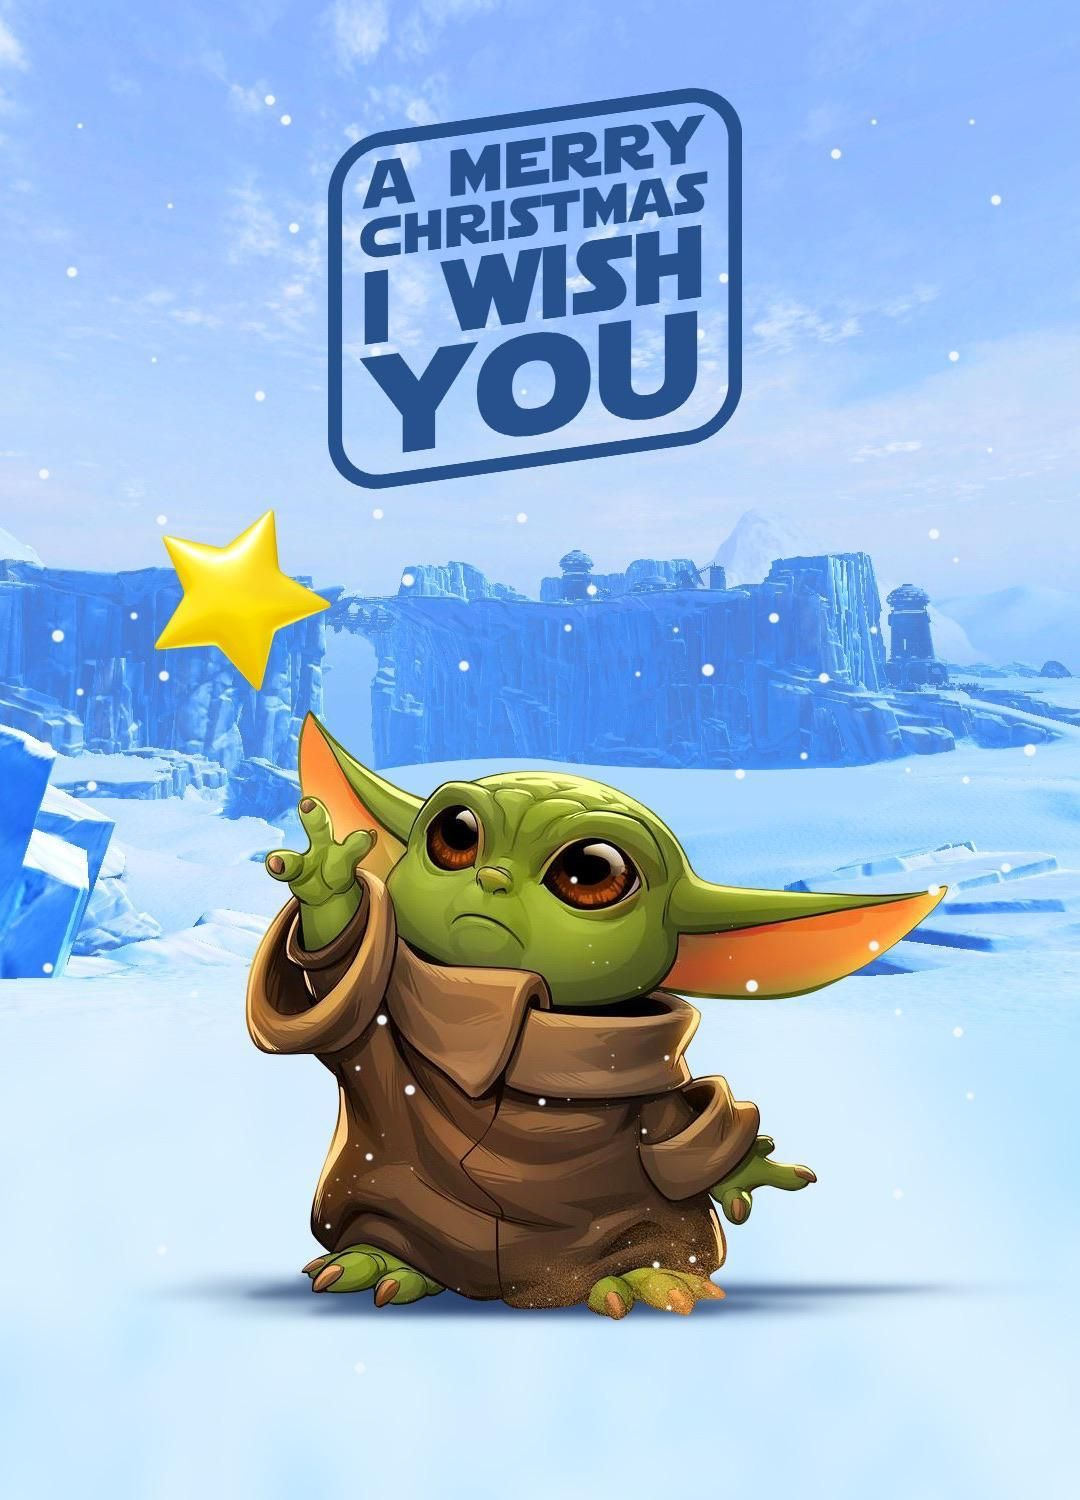 A Merry Christmas I Wish You in 2020 Star wars art, Star